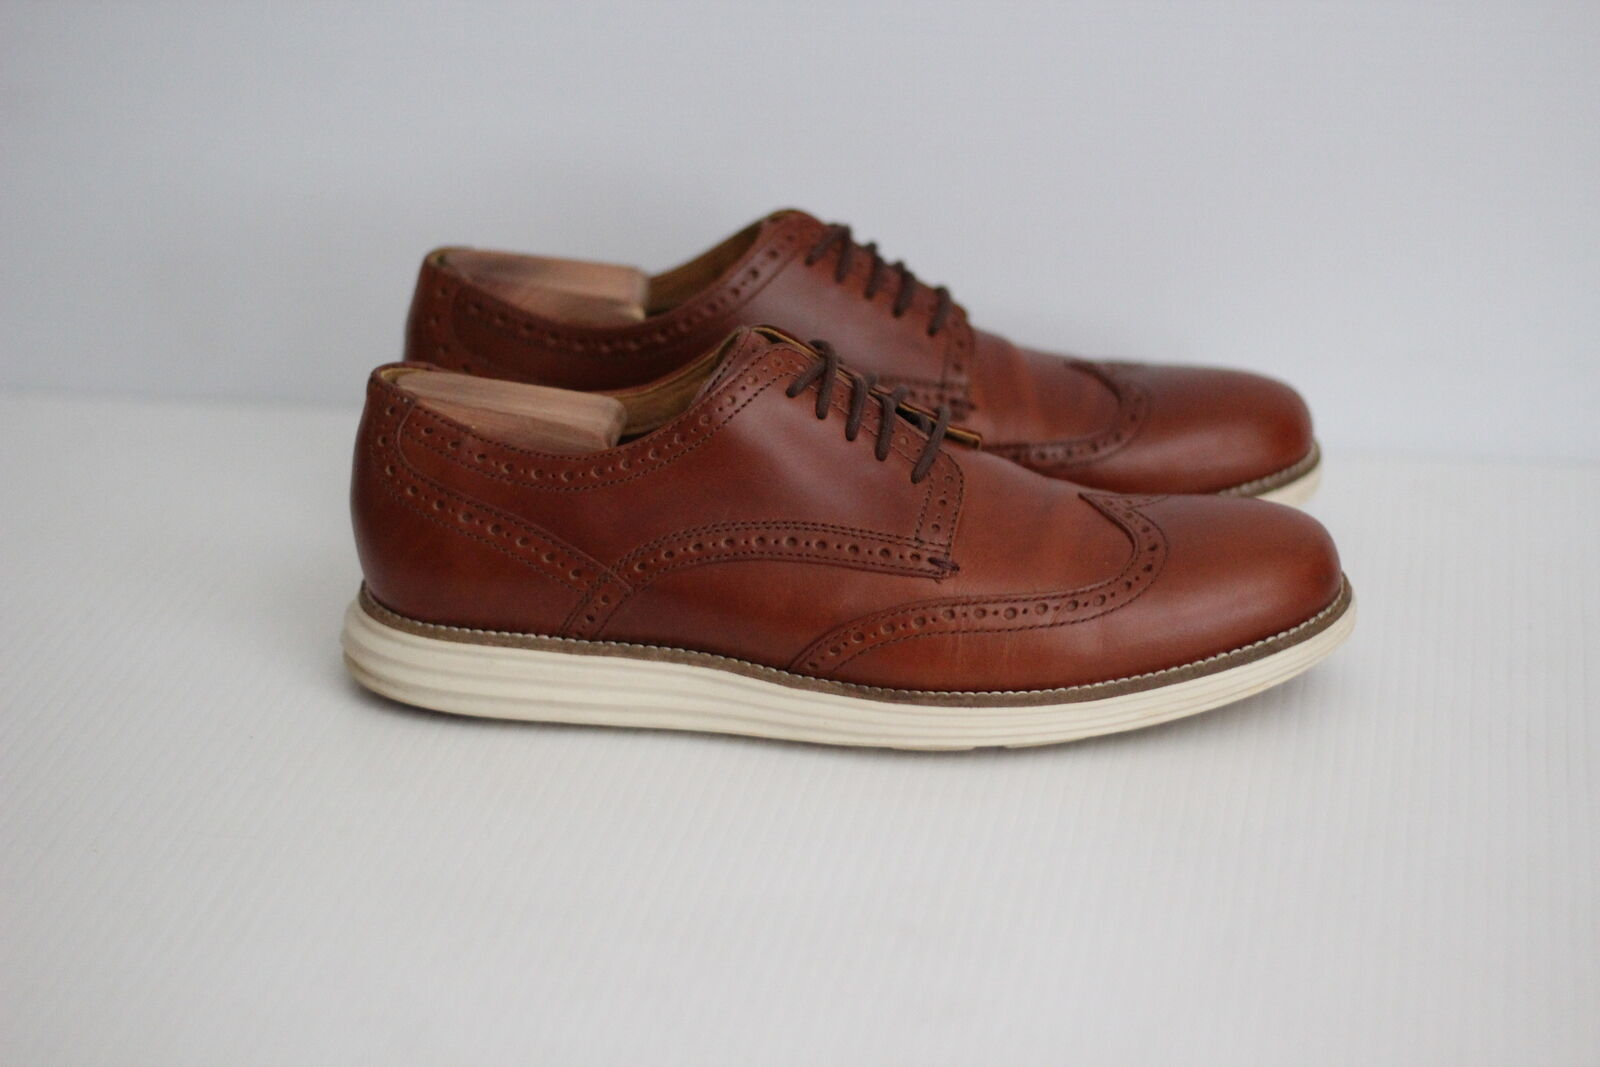 Cole Haan Original Original Original Grand Wingtip Oxford - Chestnut Brown - 10M - C22793  (S62) 184b08